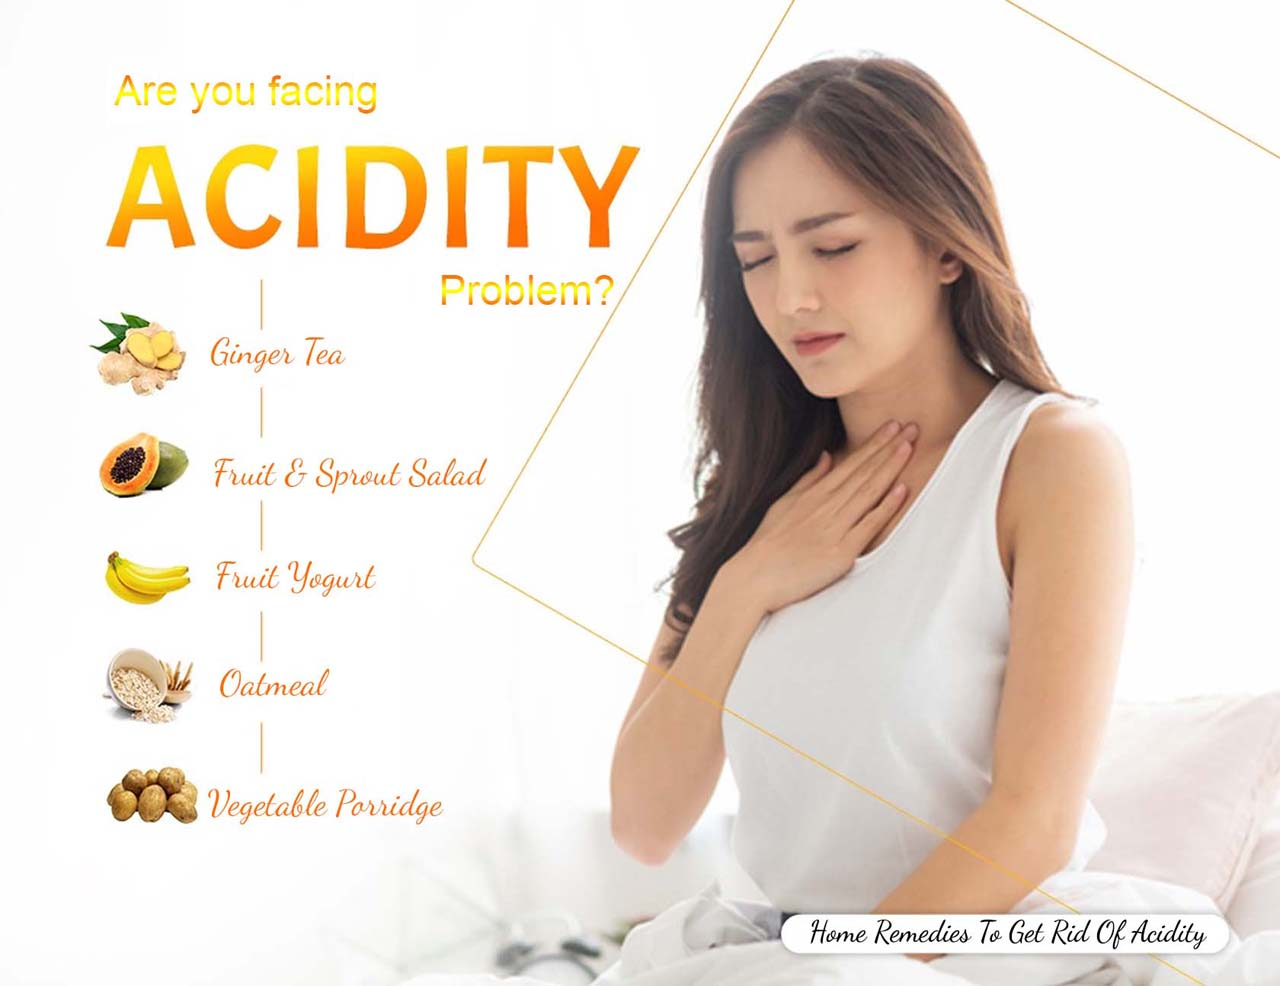 Home Remedies To Get Rid Of Acidity